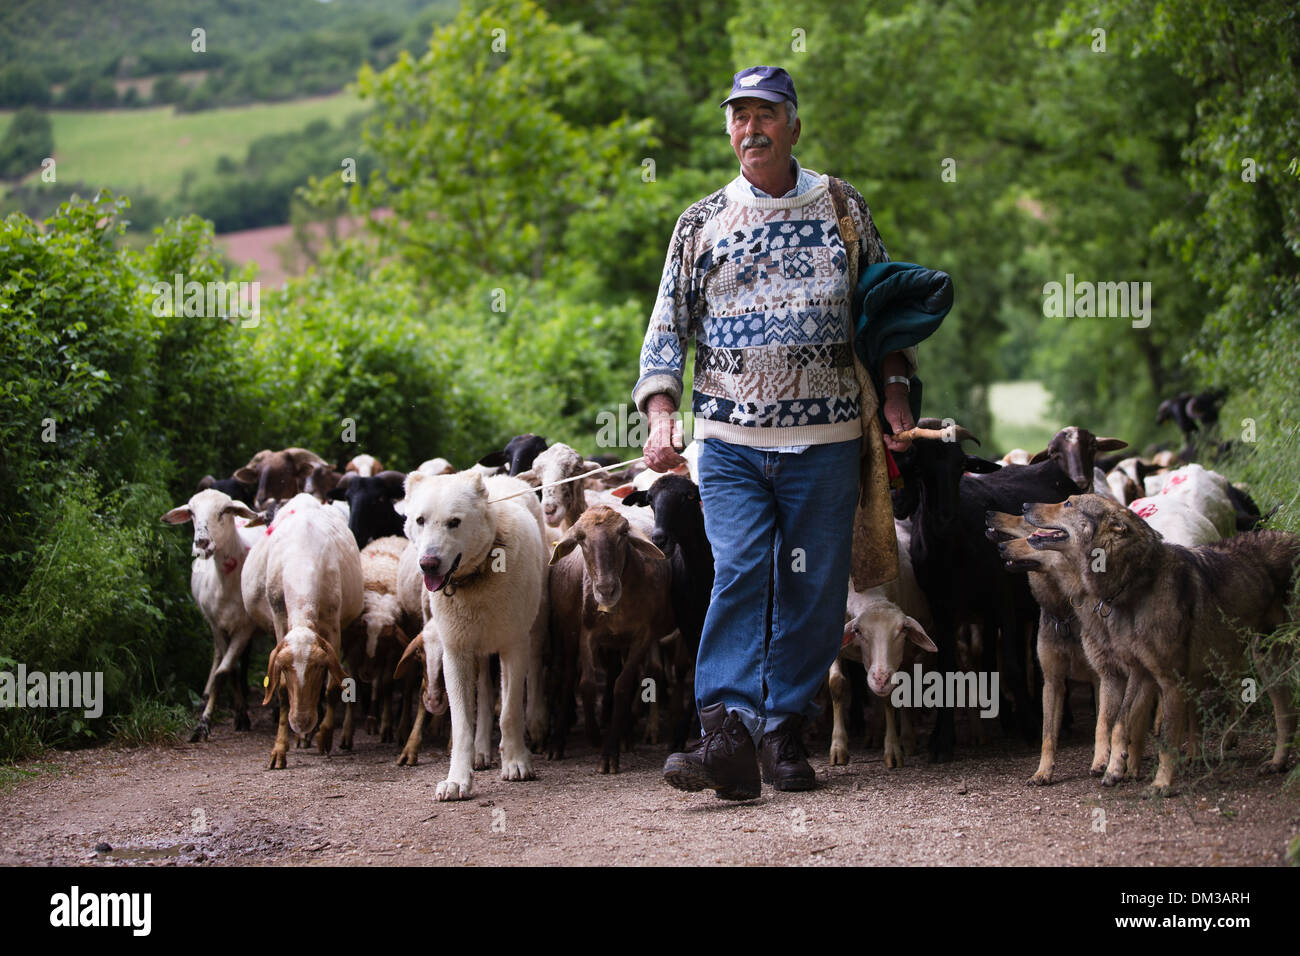 Santino the shepherd with his flock, nr Campi, Valnerina, Umbria, Italy - Stock Image